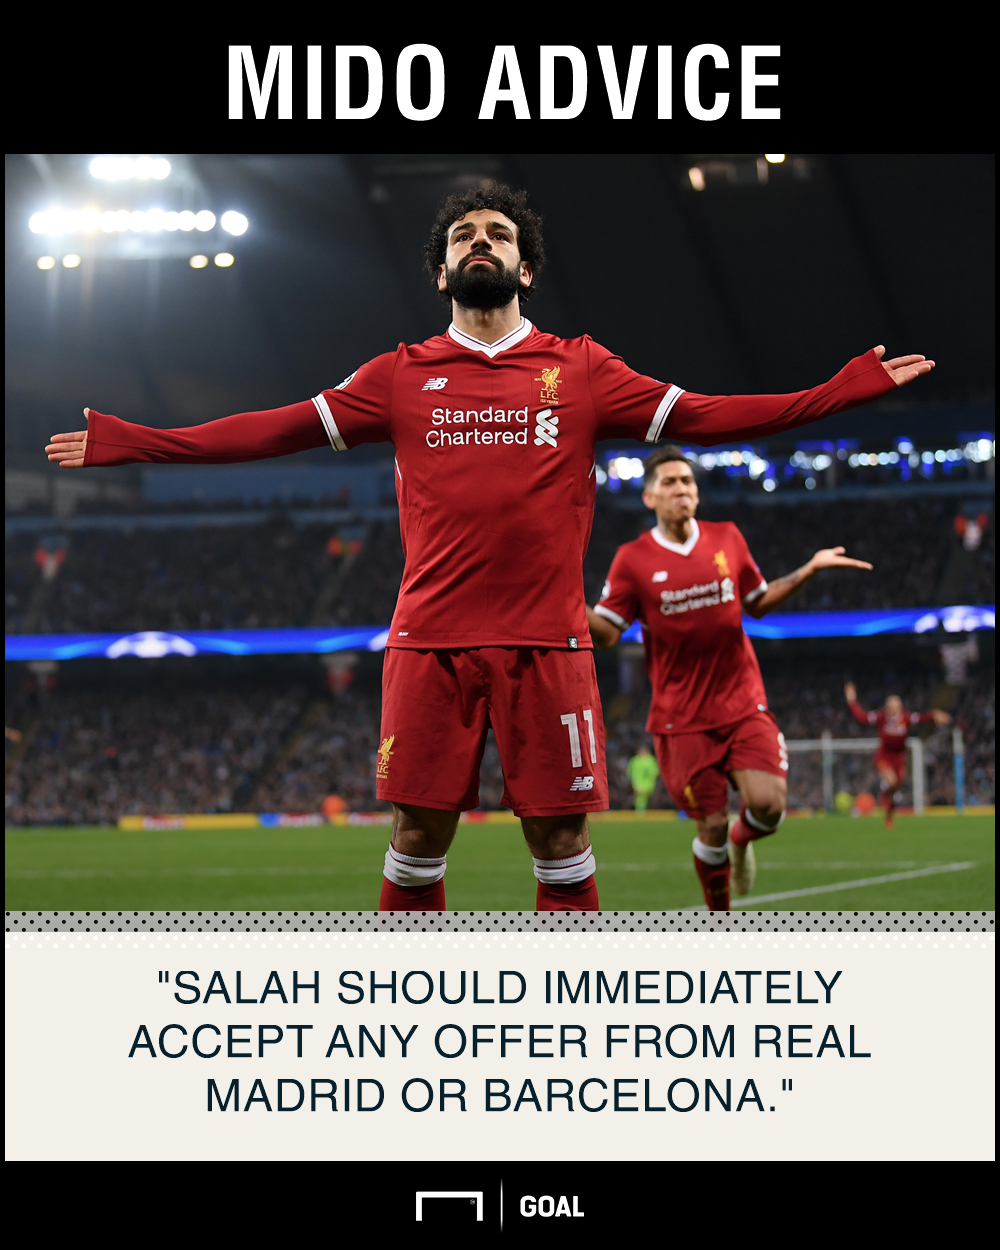 Mohamed Salah accept Real Madrid or Barcelona offer Mido